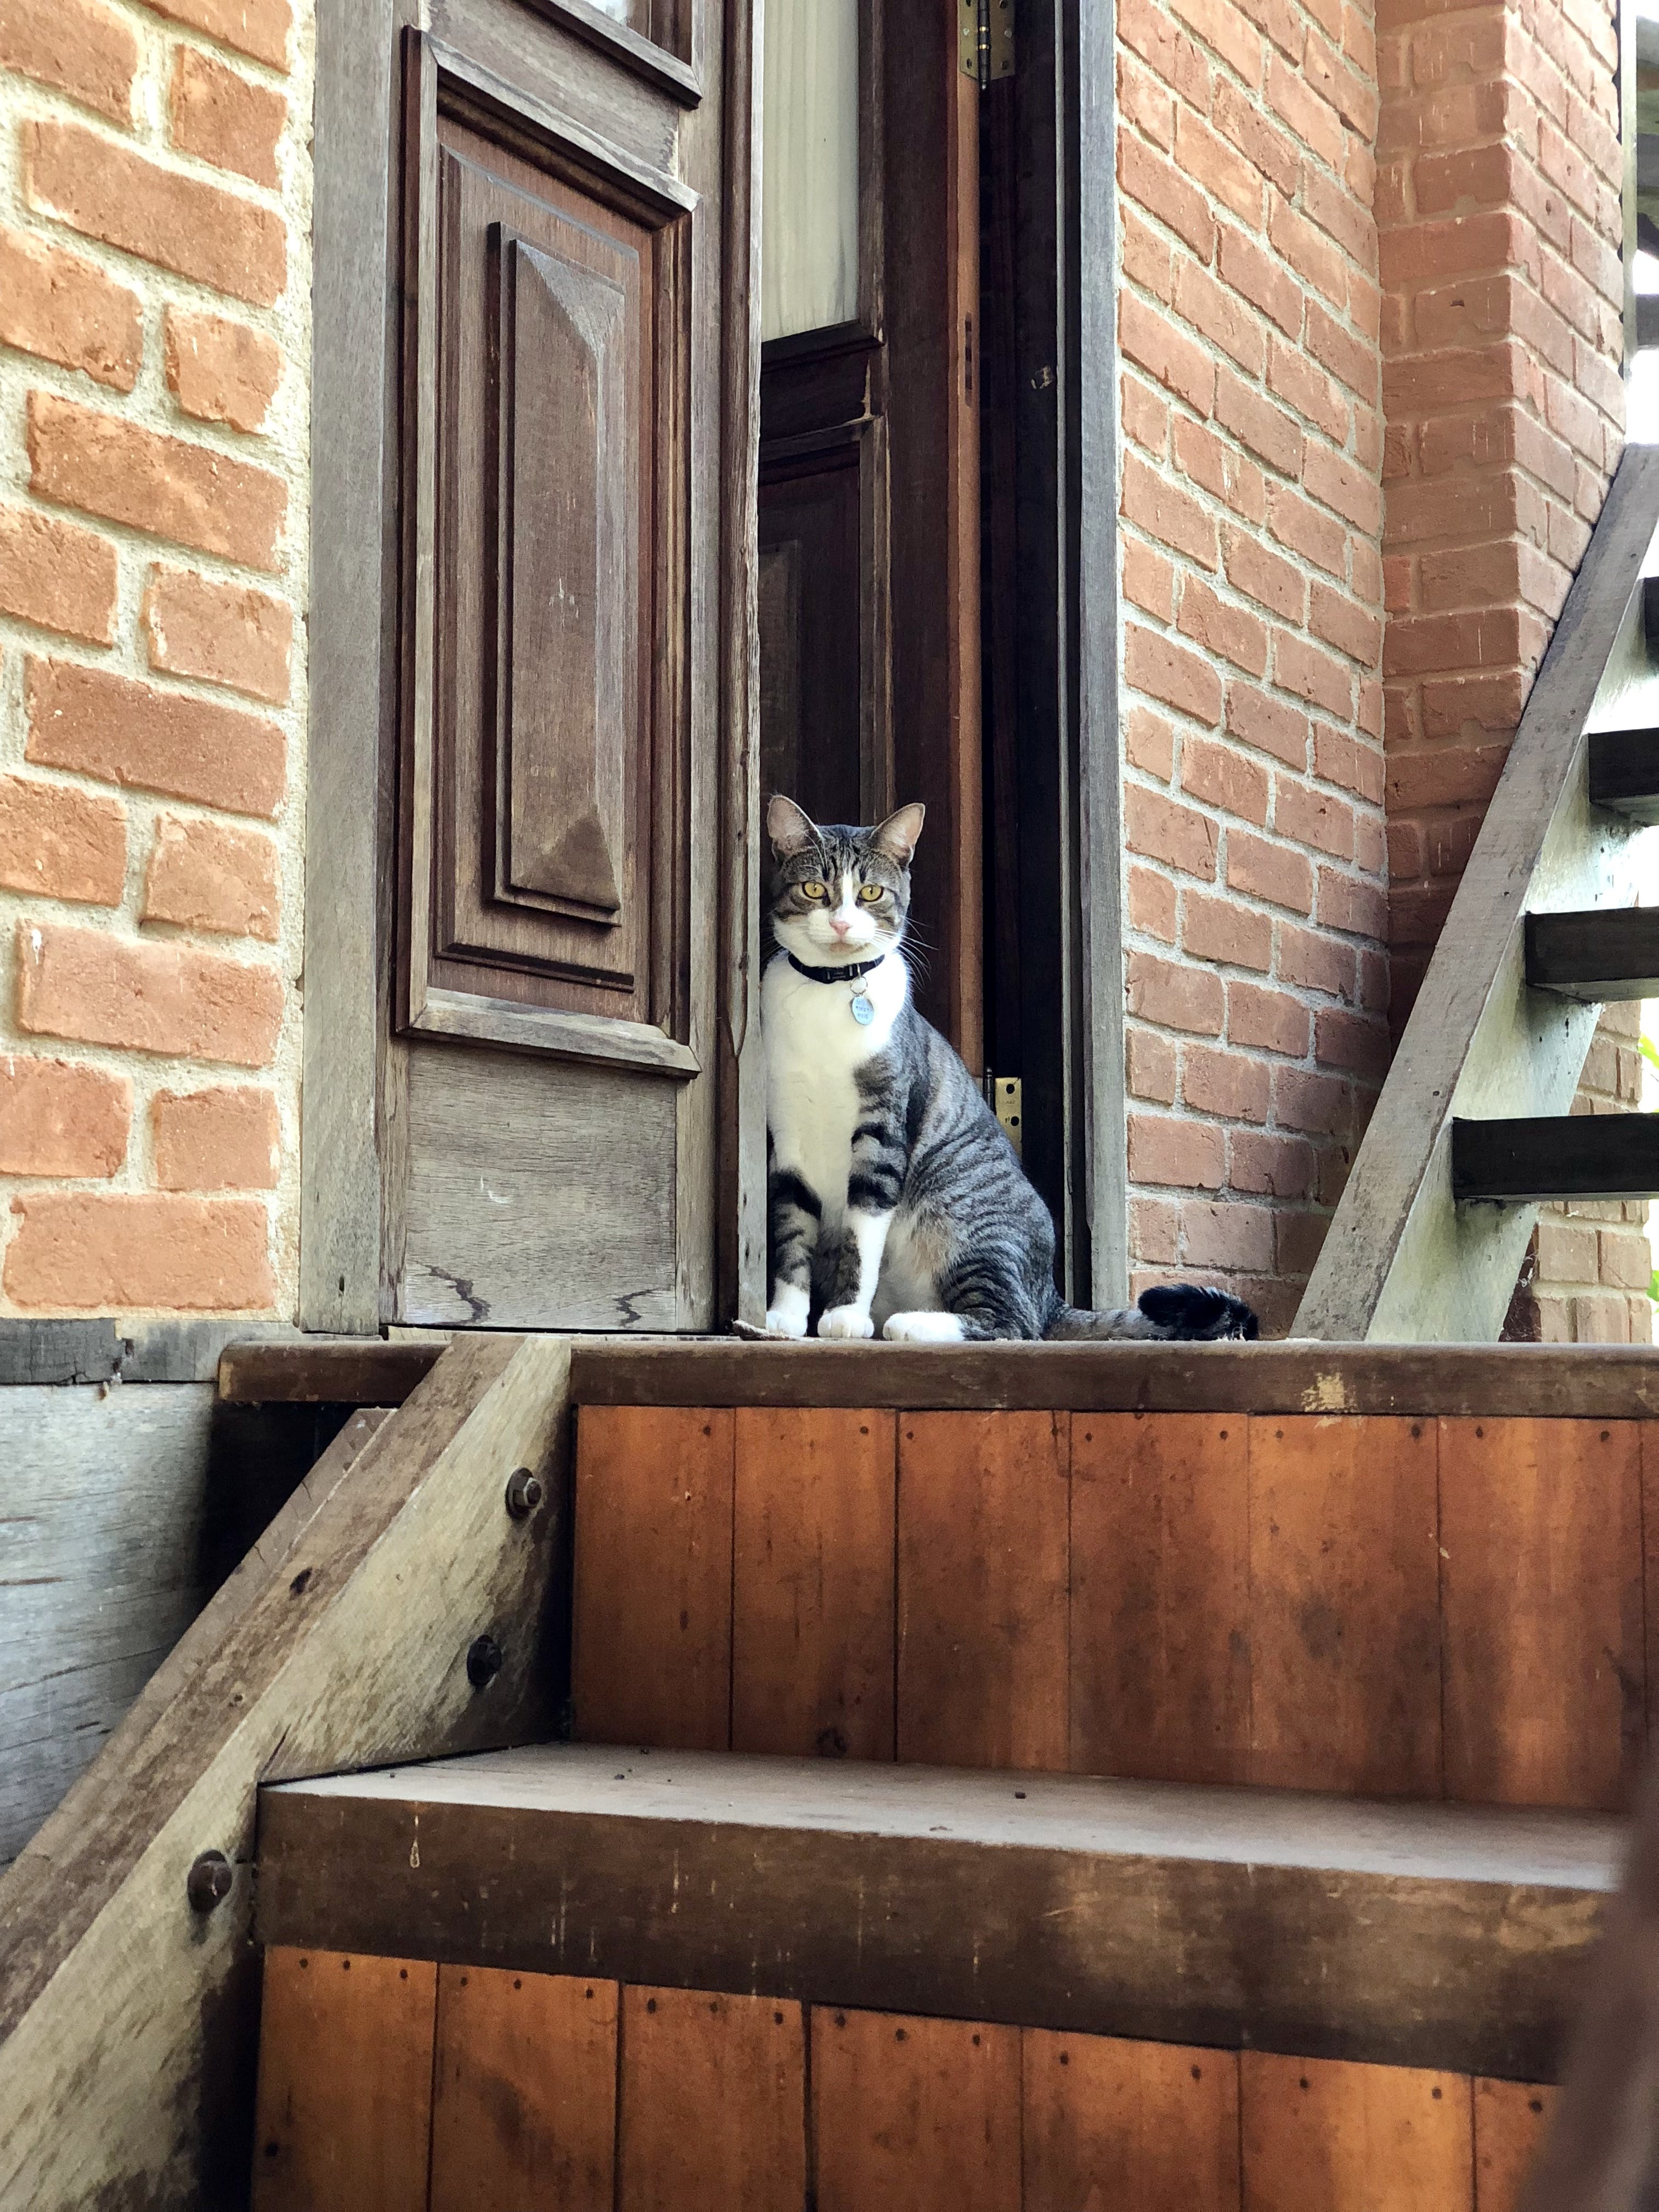 White and Gray Tabby Cat Near Stairs